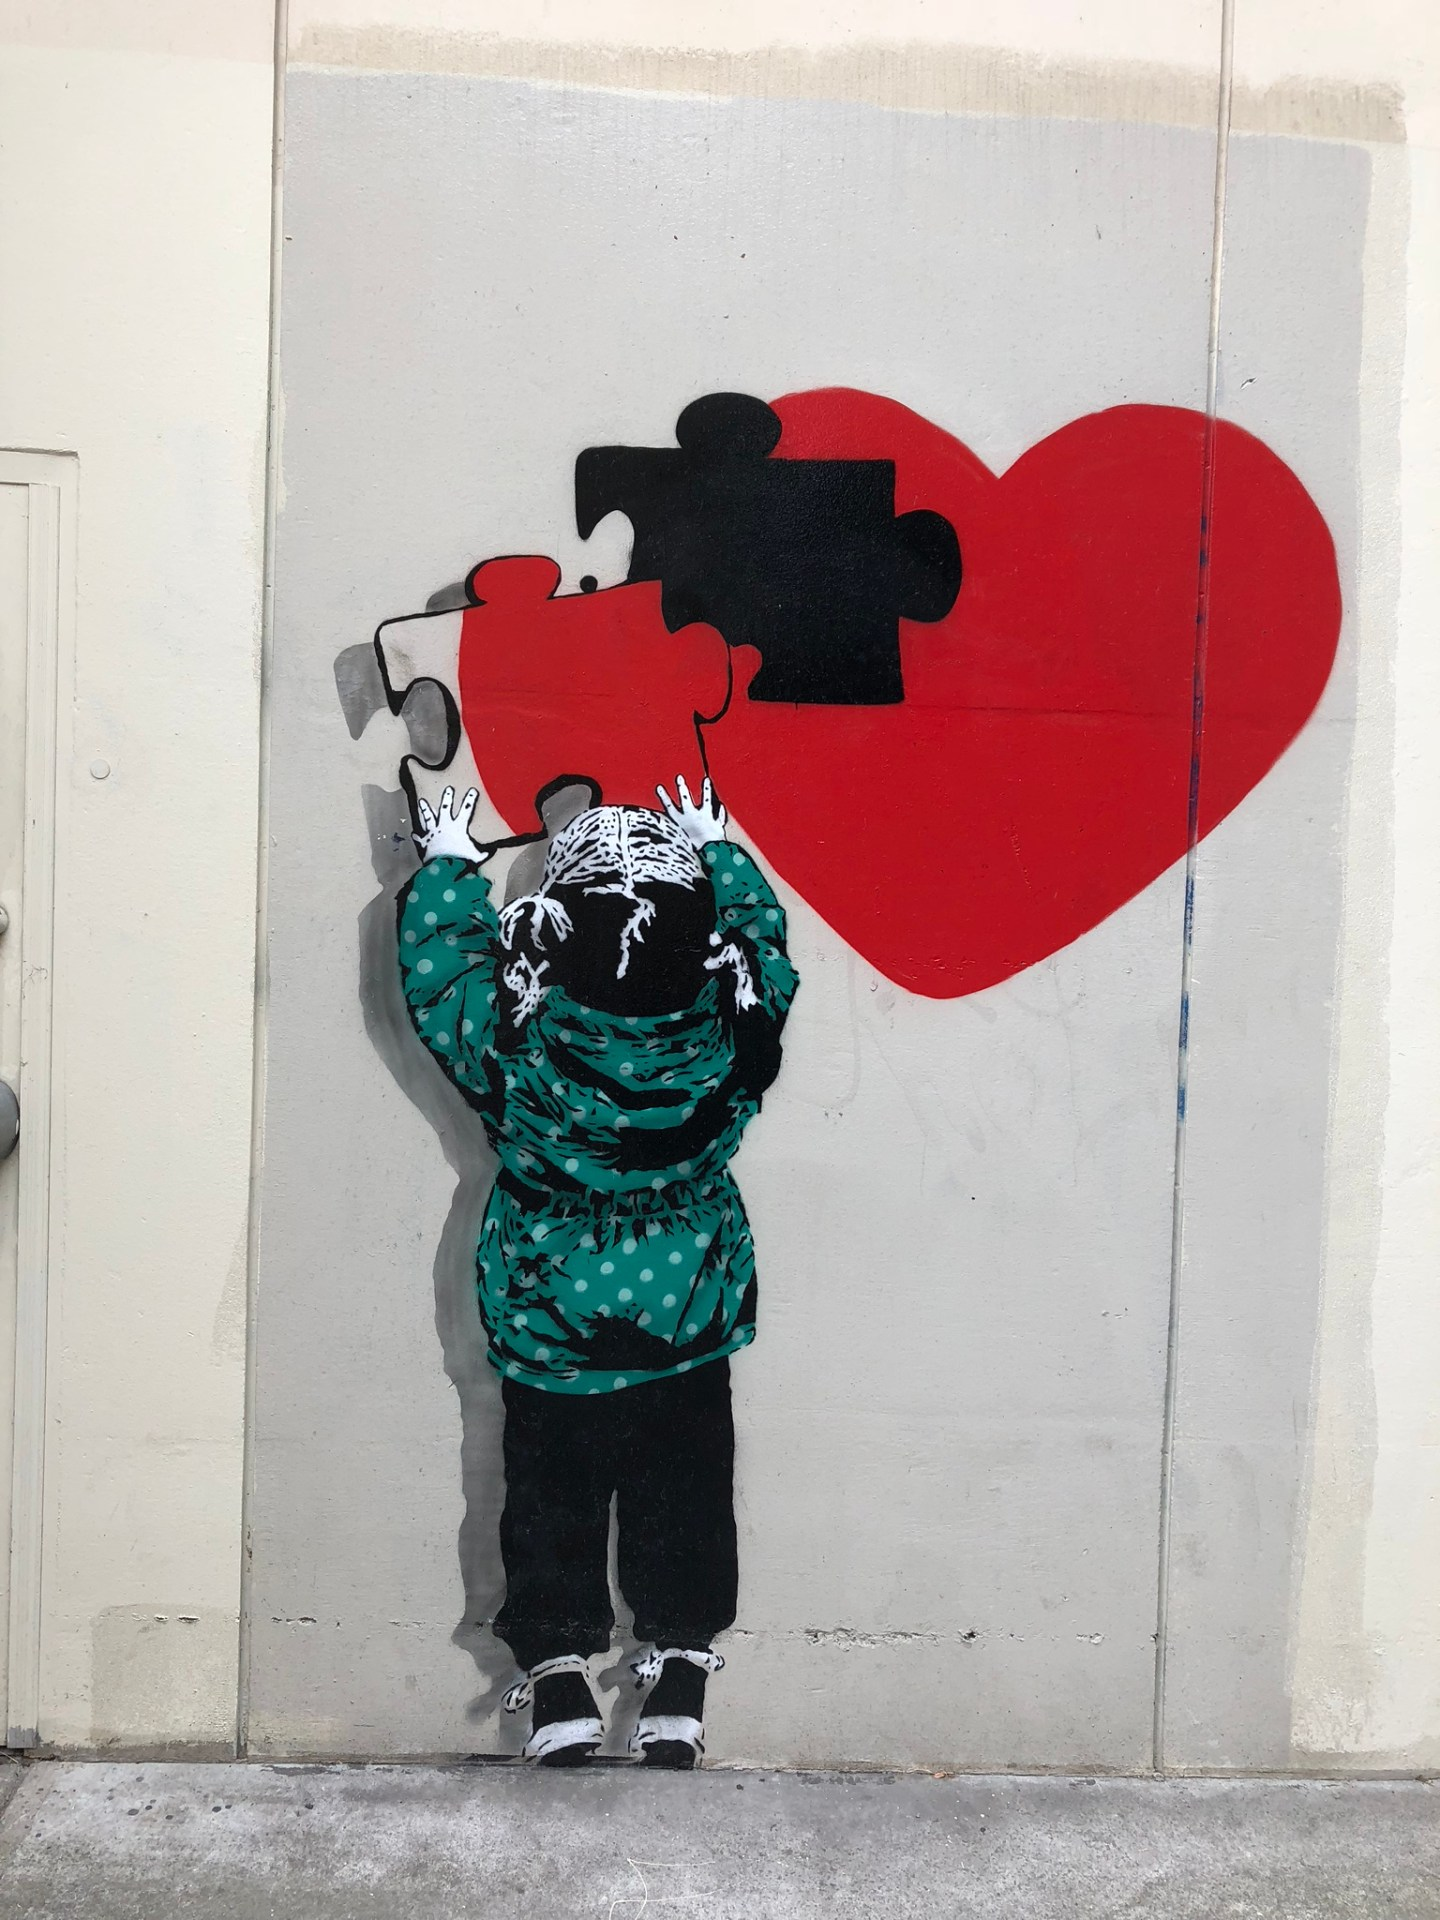 Banksy style mural at Vancouver Mural Festival